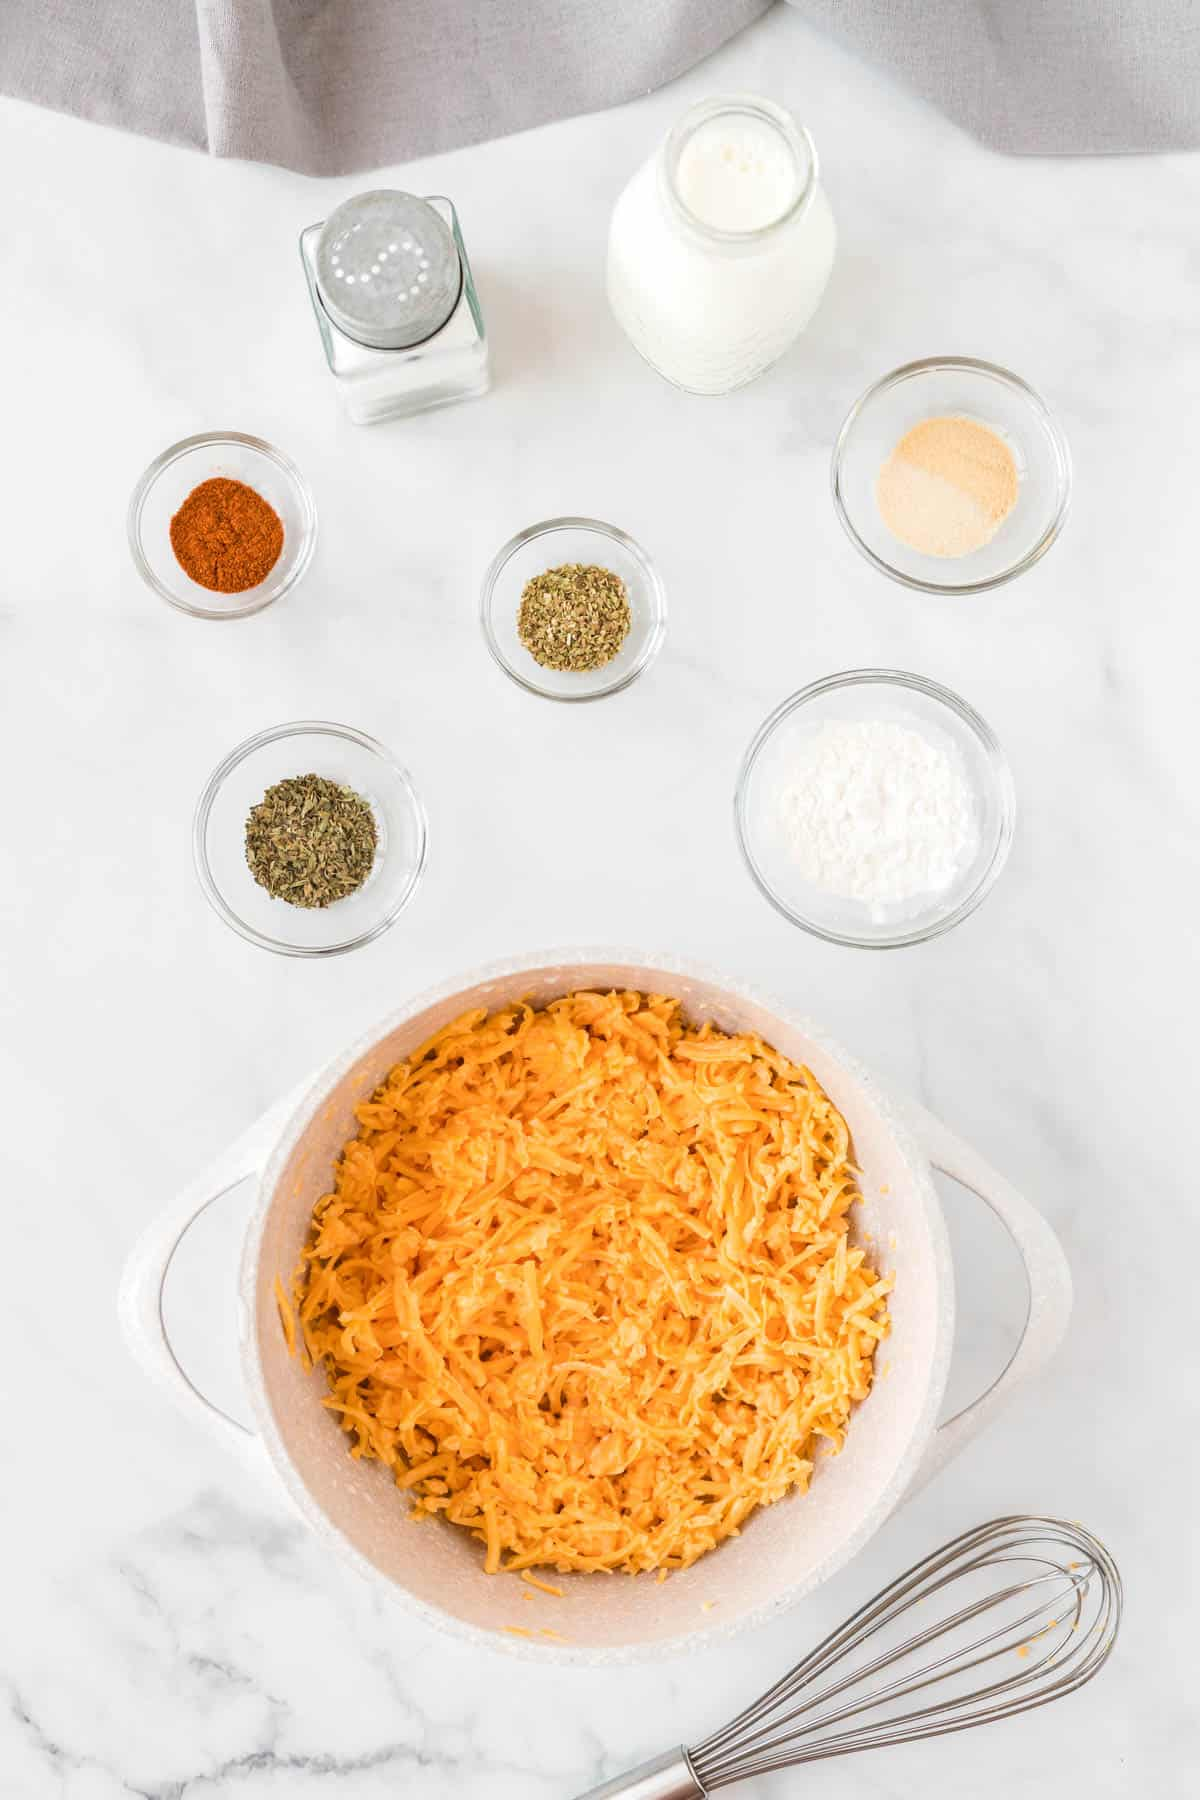 ingredients to make cheese sauce